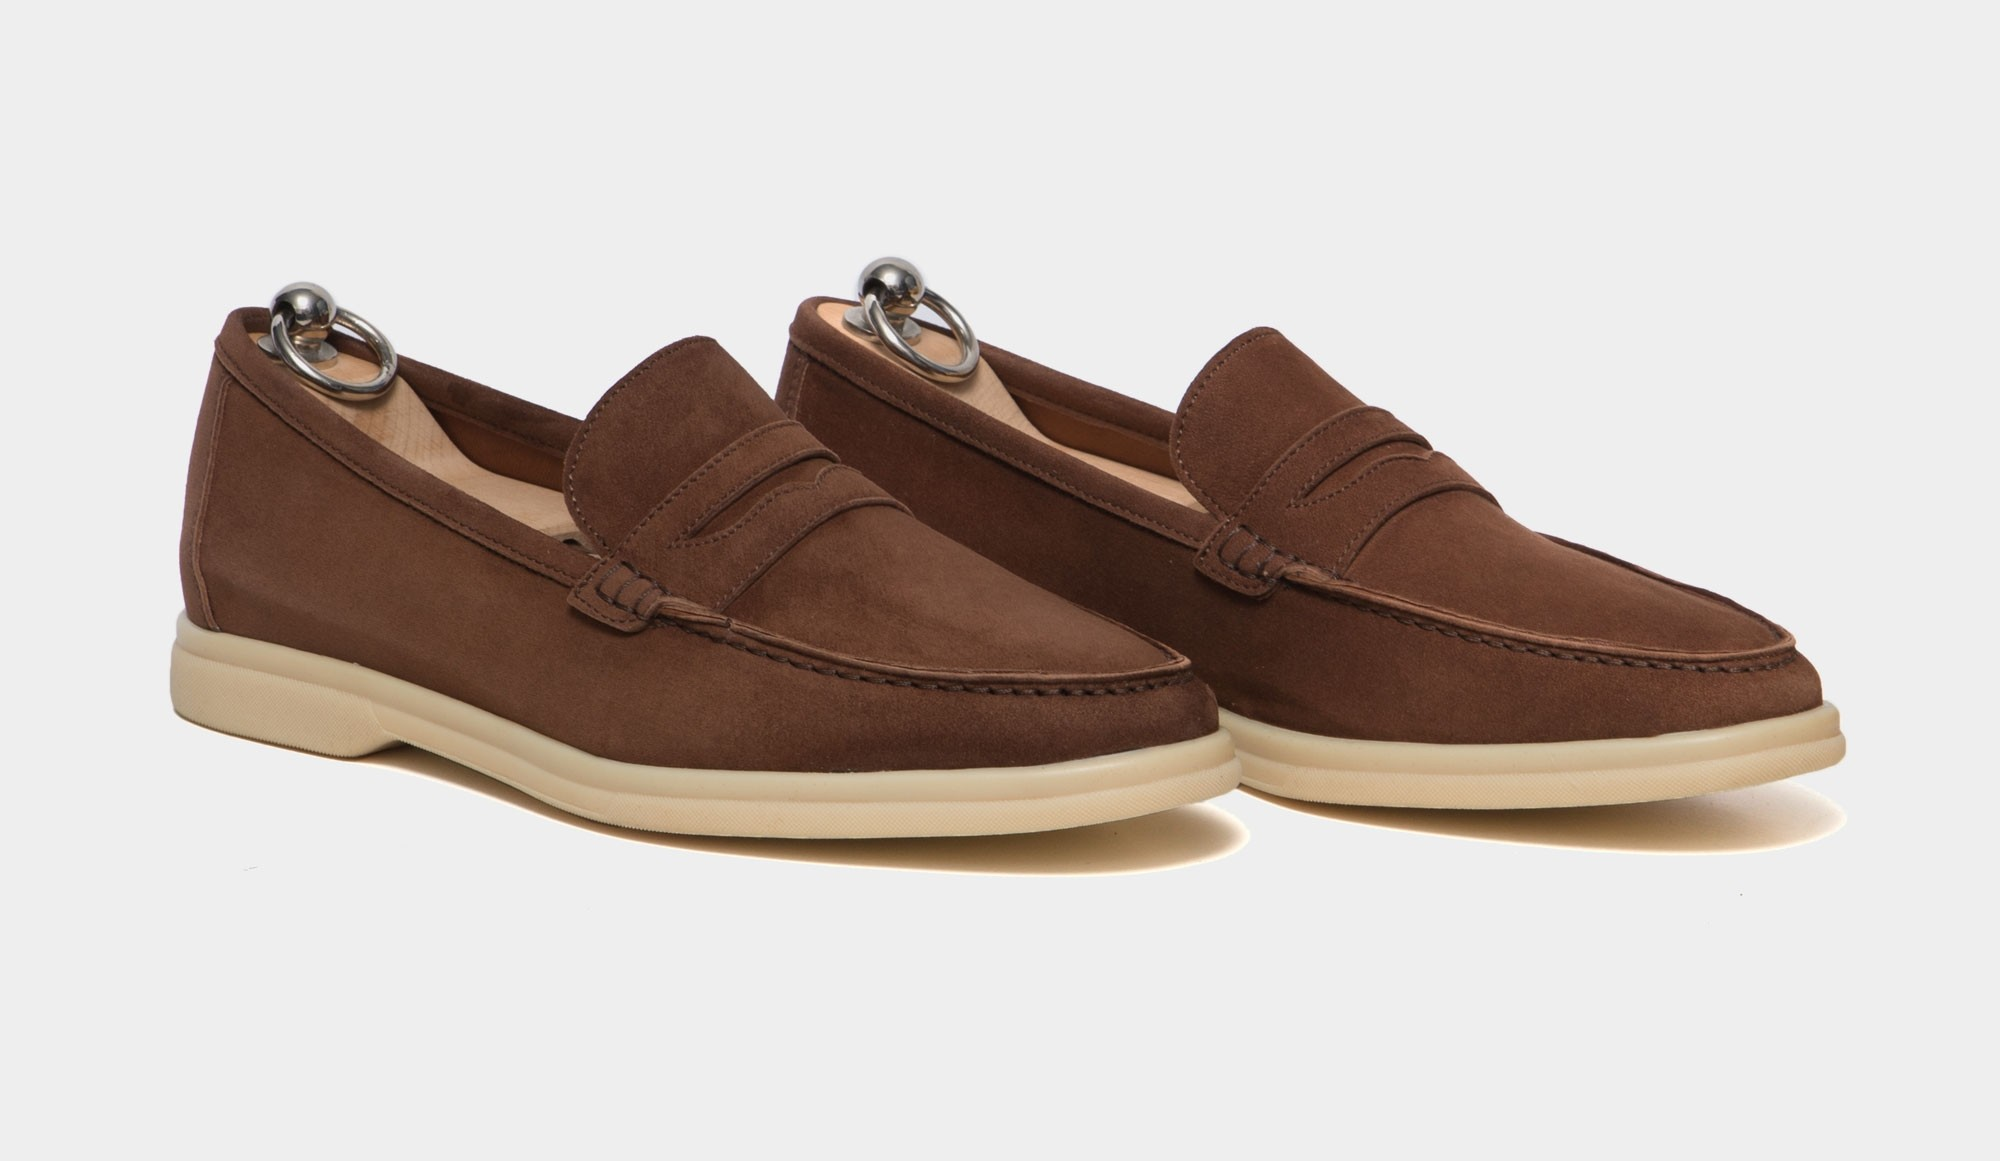 penny loafers - Brown Andrea Ventura sUIIKqu